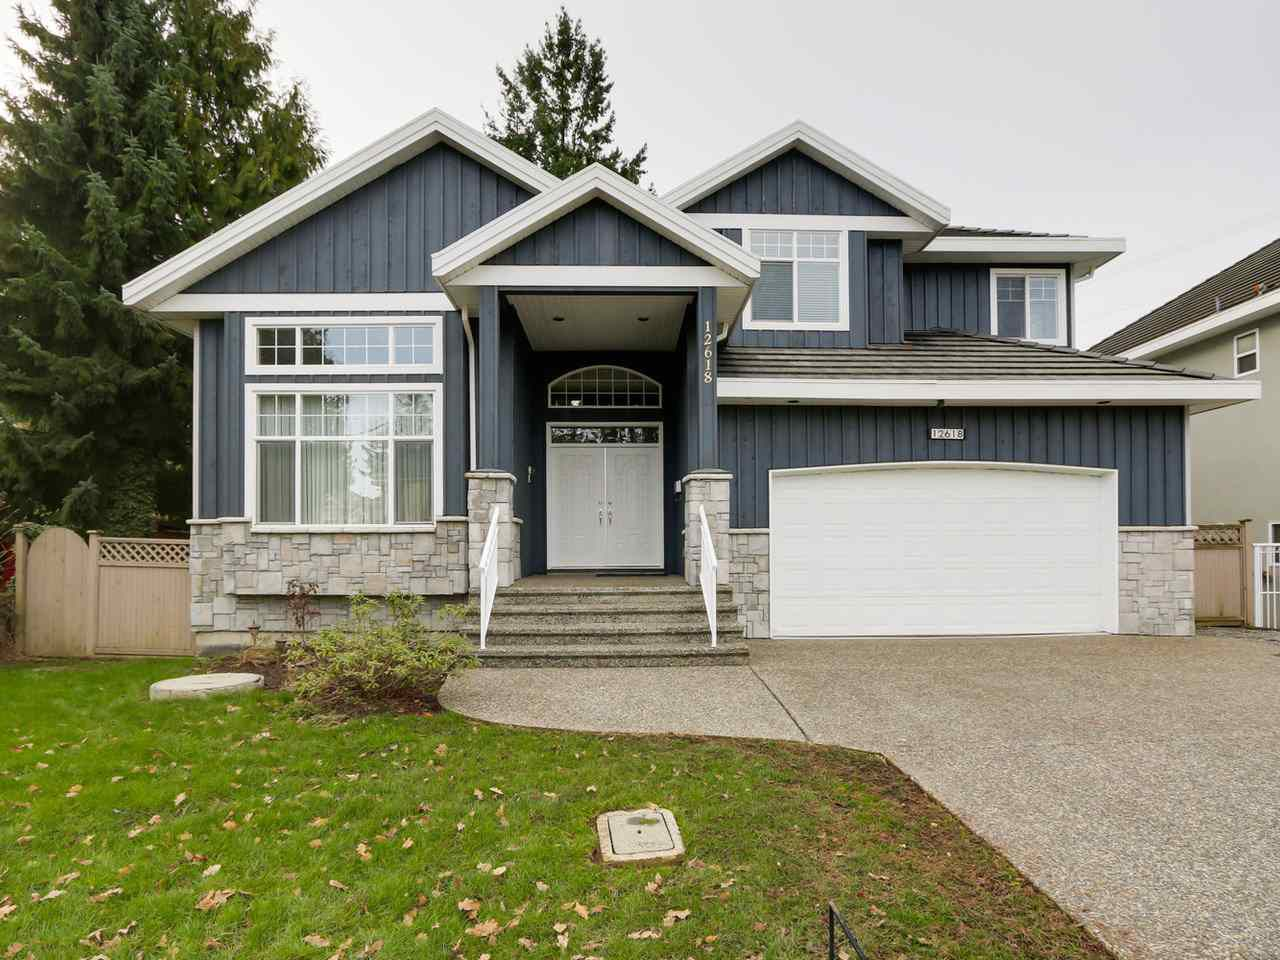 Main Photo: 12618 62 AVENUE in : Panorama Ridge House for sale : MLS®# R2040487